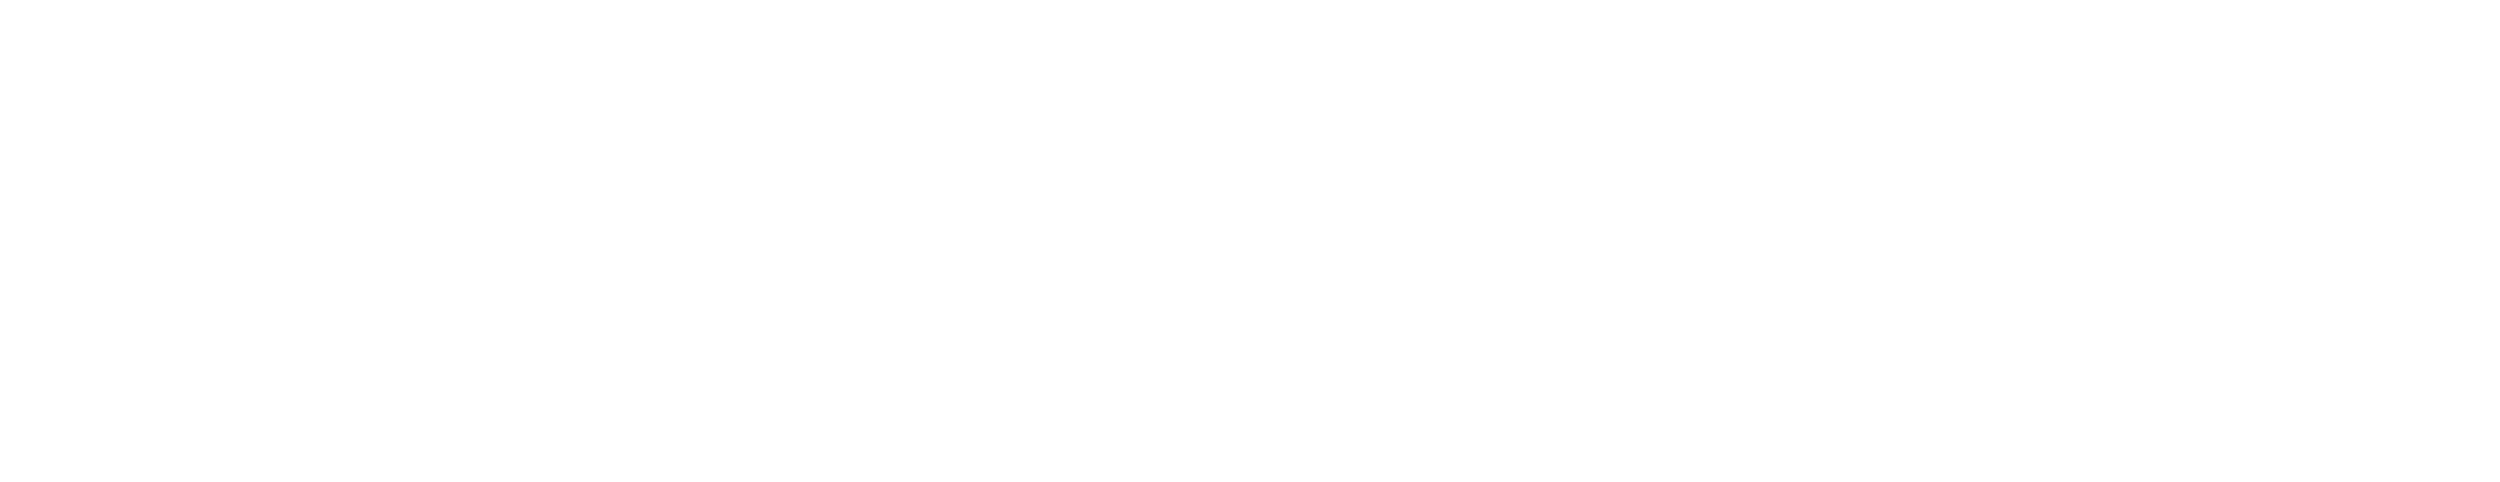 DJLD-LOGO.png